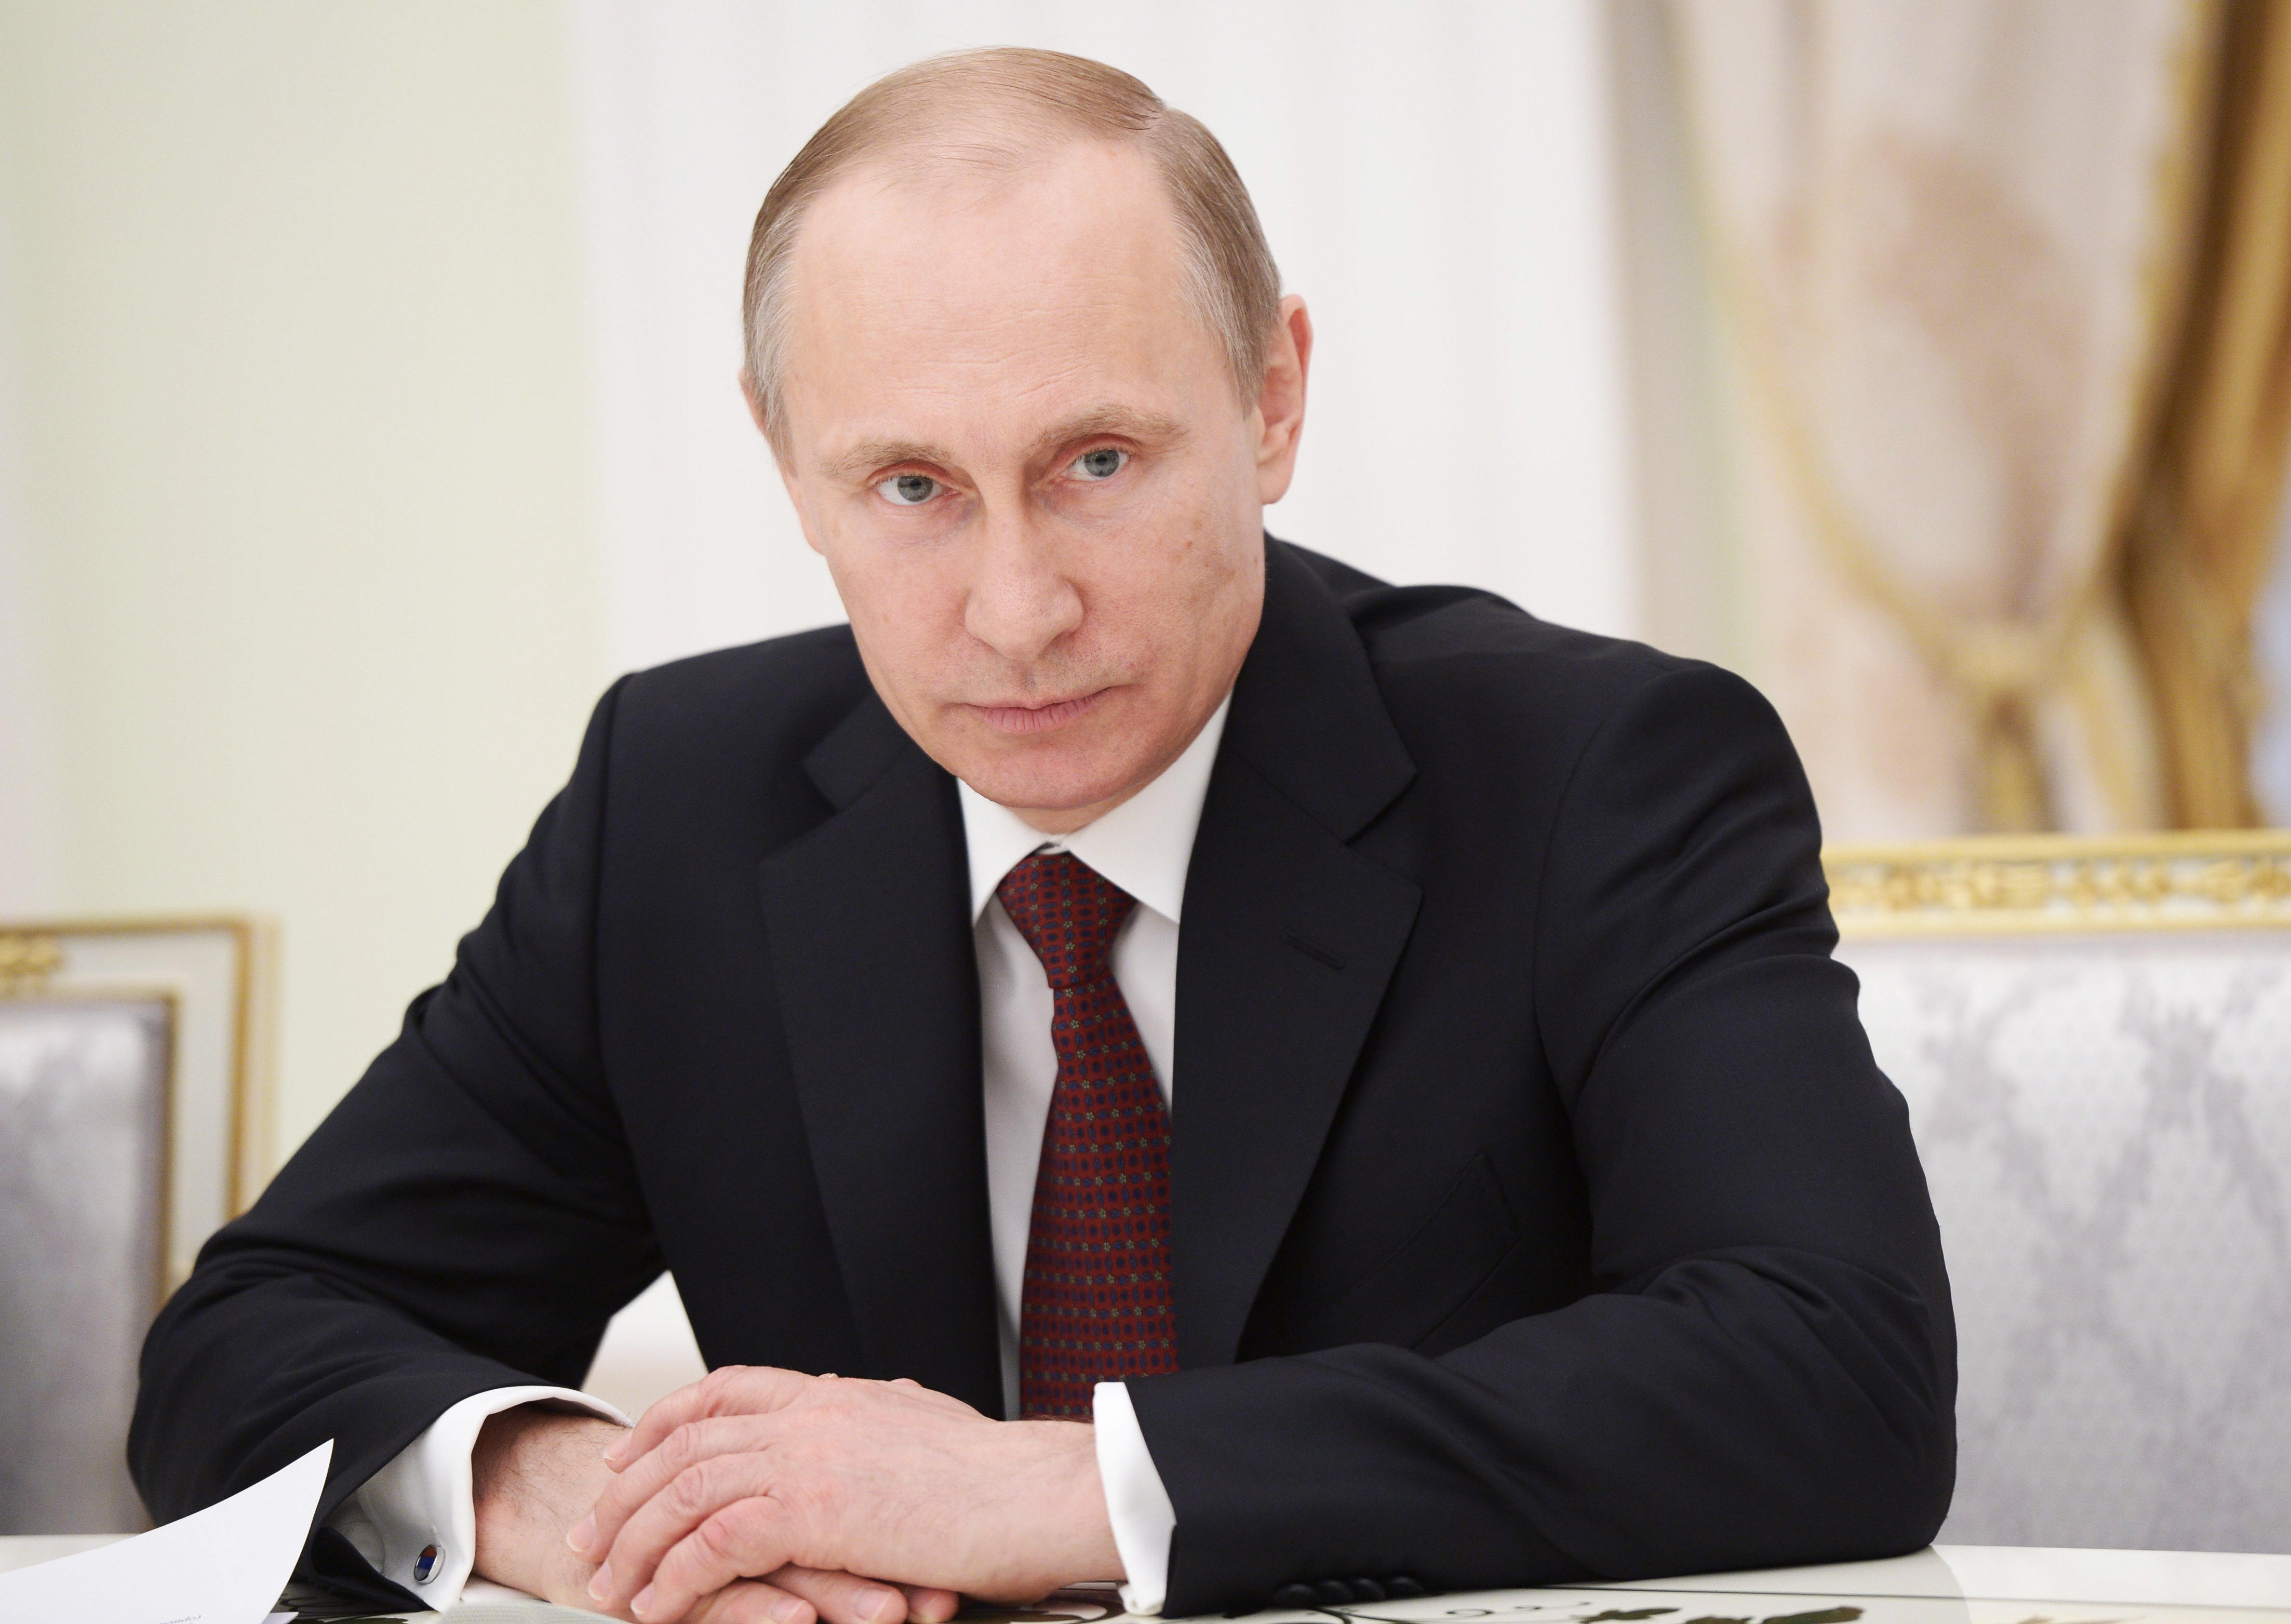 Russia's president Vladimir Putin at a meeting with representatives of the Federation of Independent Trade Unions of Russia in Moscow on May 1, 2014.